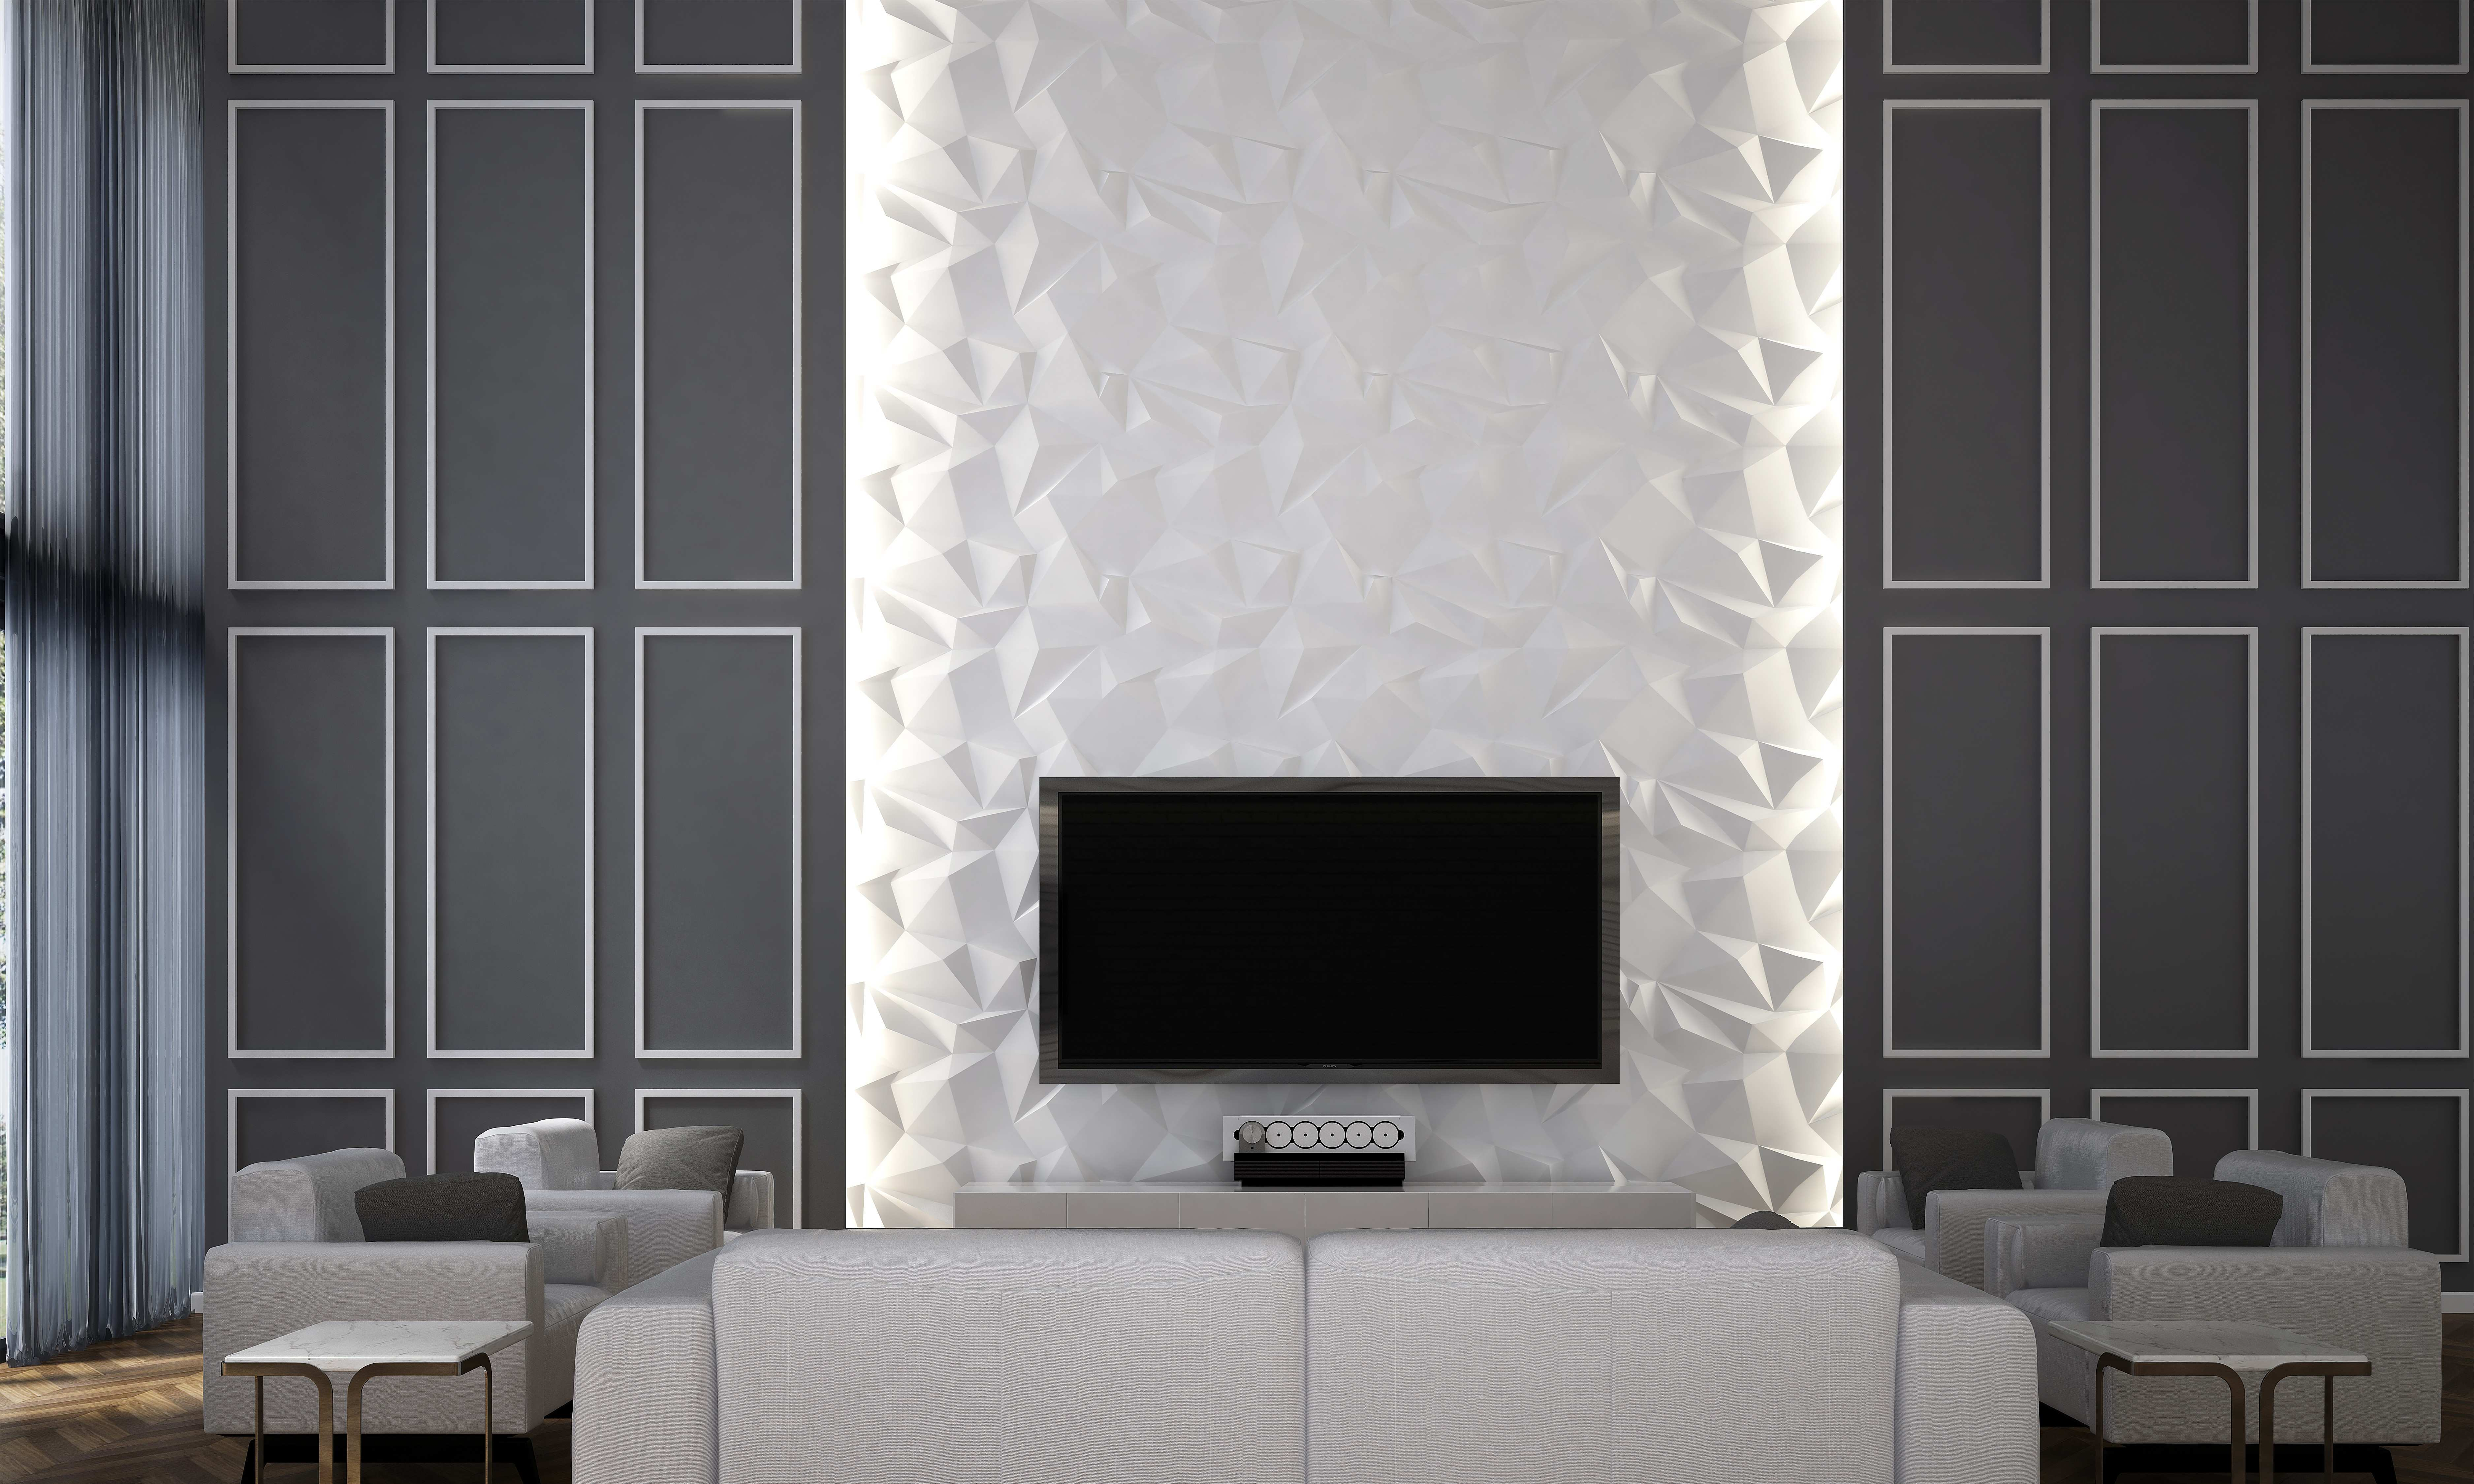 Textured Paints A Must for Feature Walls Kansai Nerolac